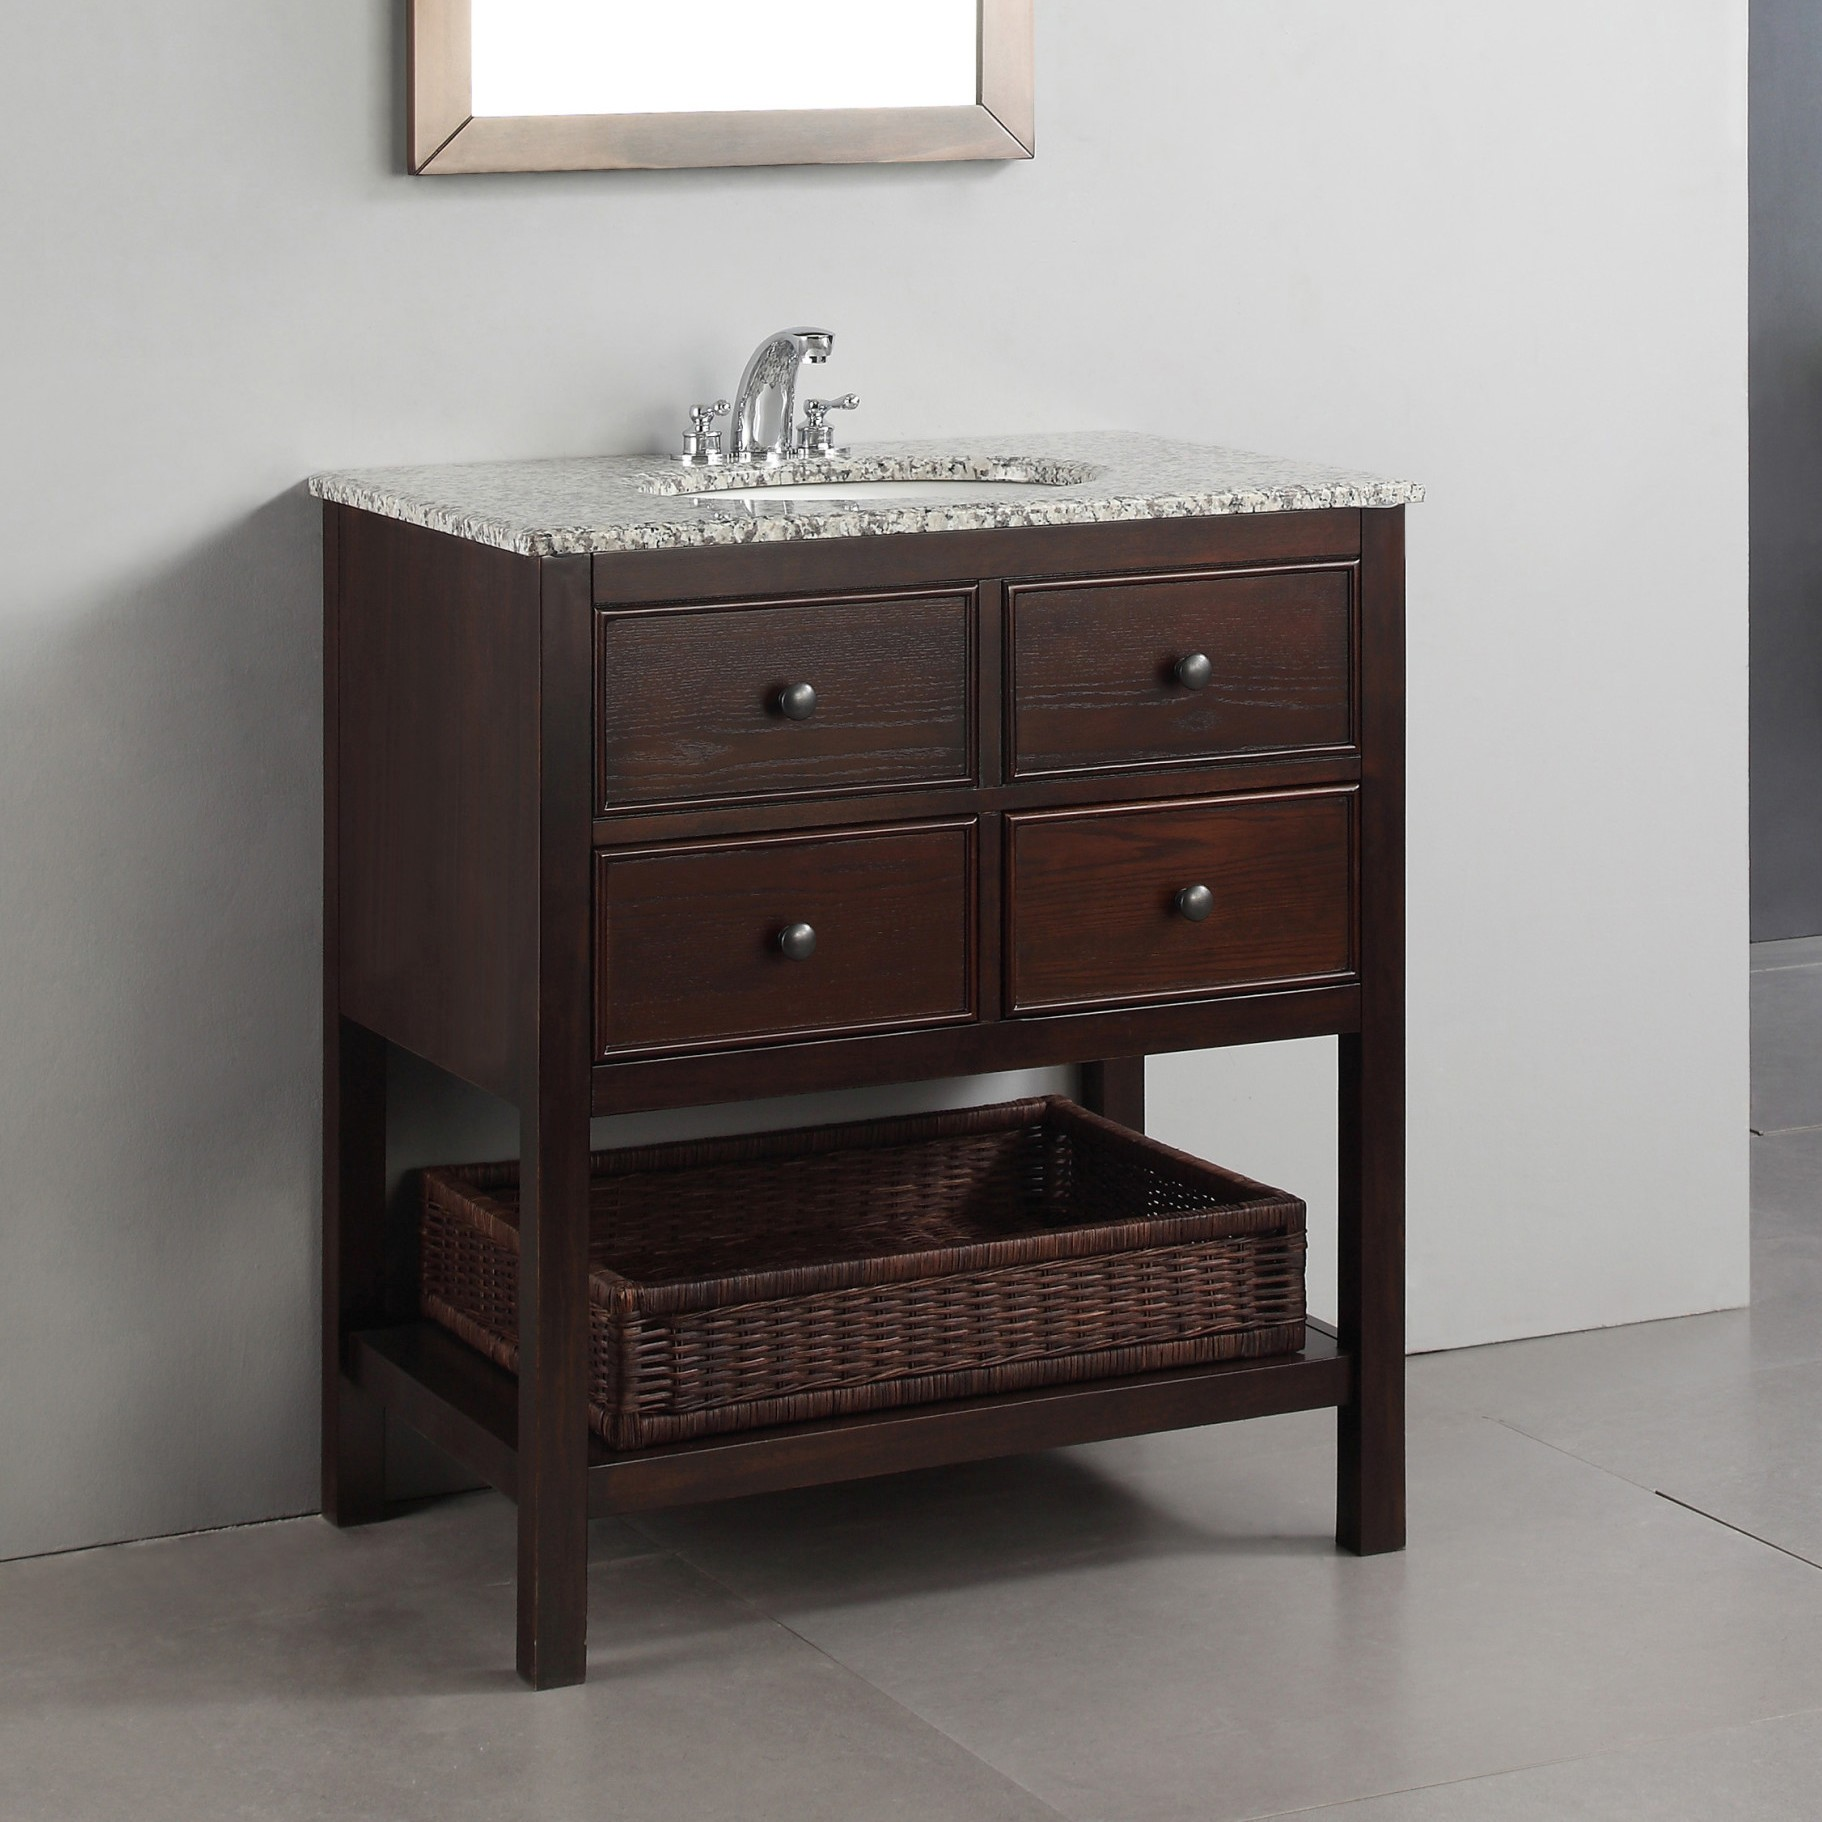 Cool wayfair bathroom vanity plan bathroom design ideas - Wayfair furniture bathroom vanities ...